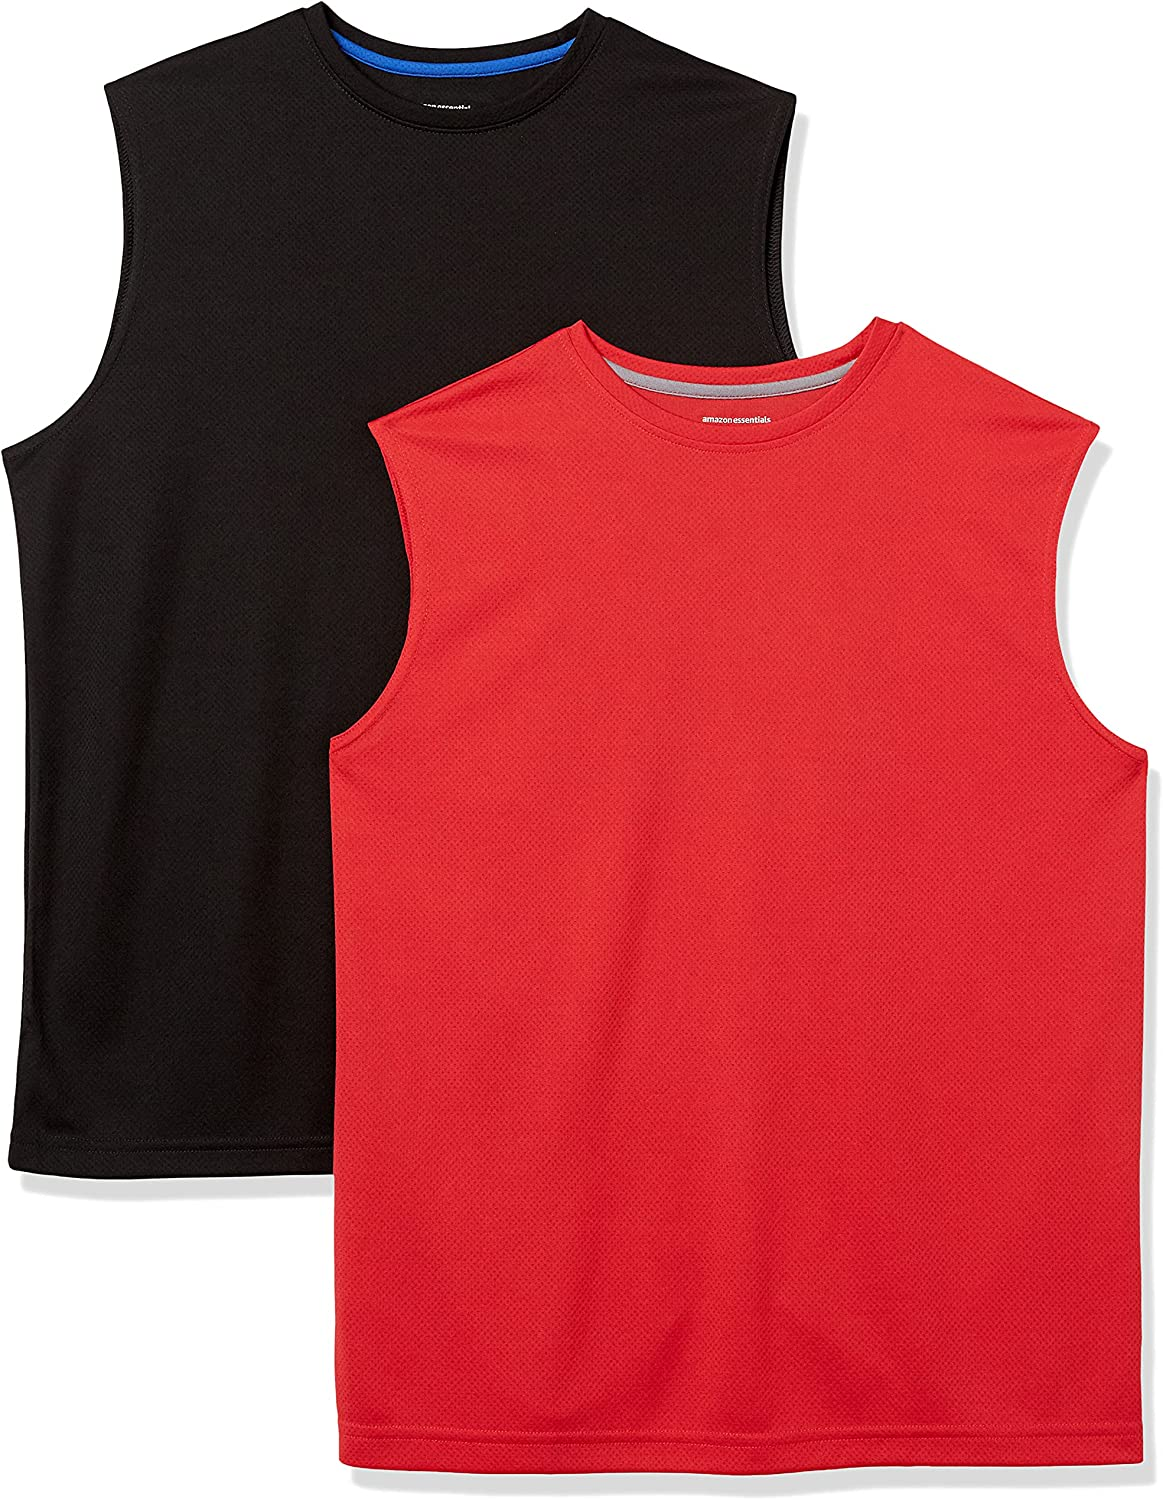 Amazon Essentials Men's Louisville-Jefferson Fort Worth Mall County Mall 2-Pack Muscle T-Shirts Performance